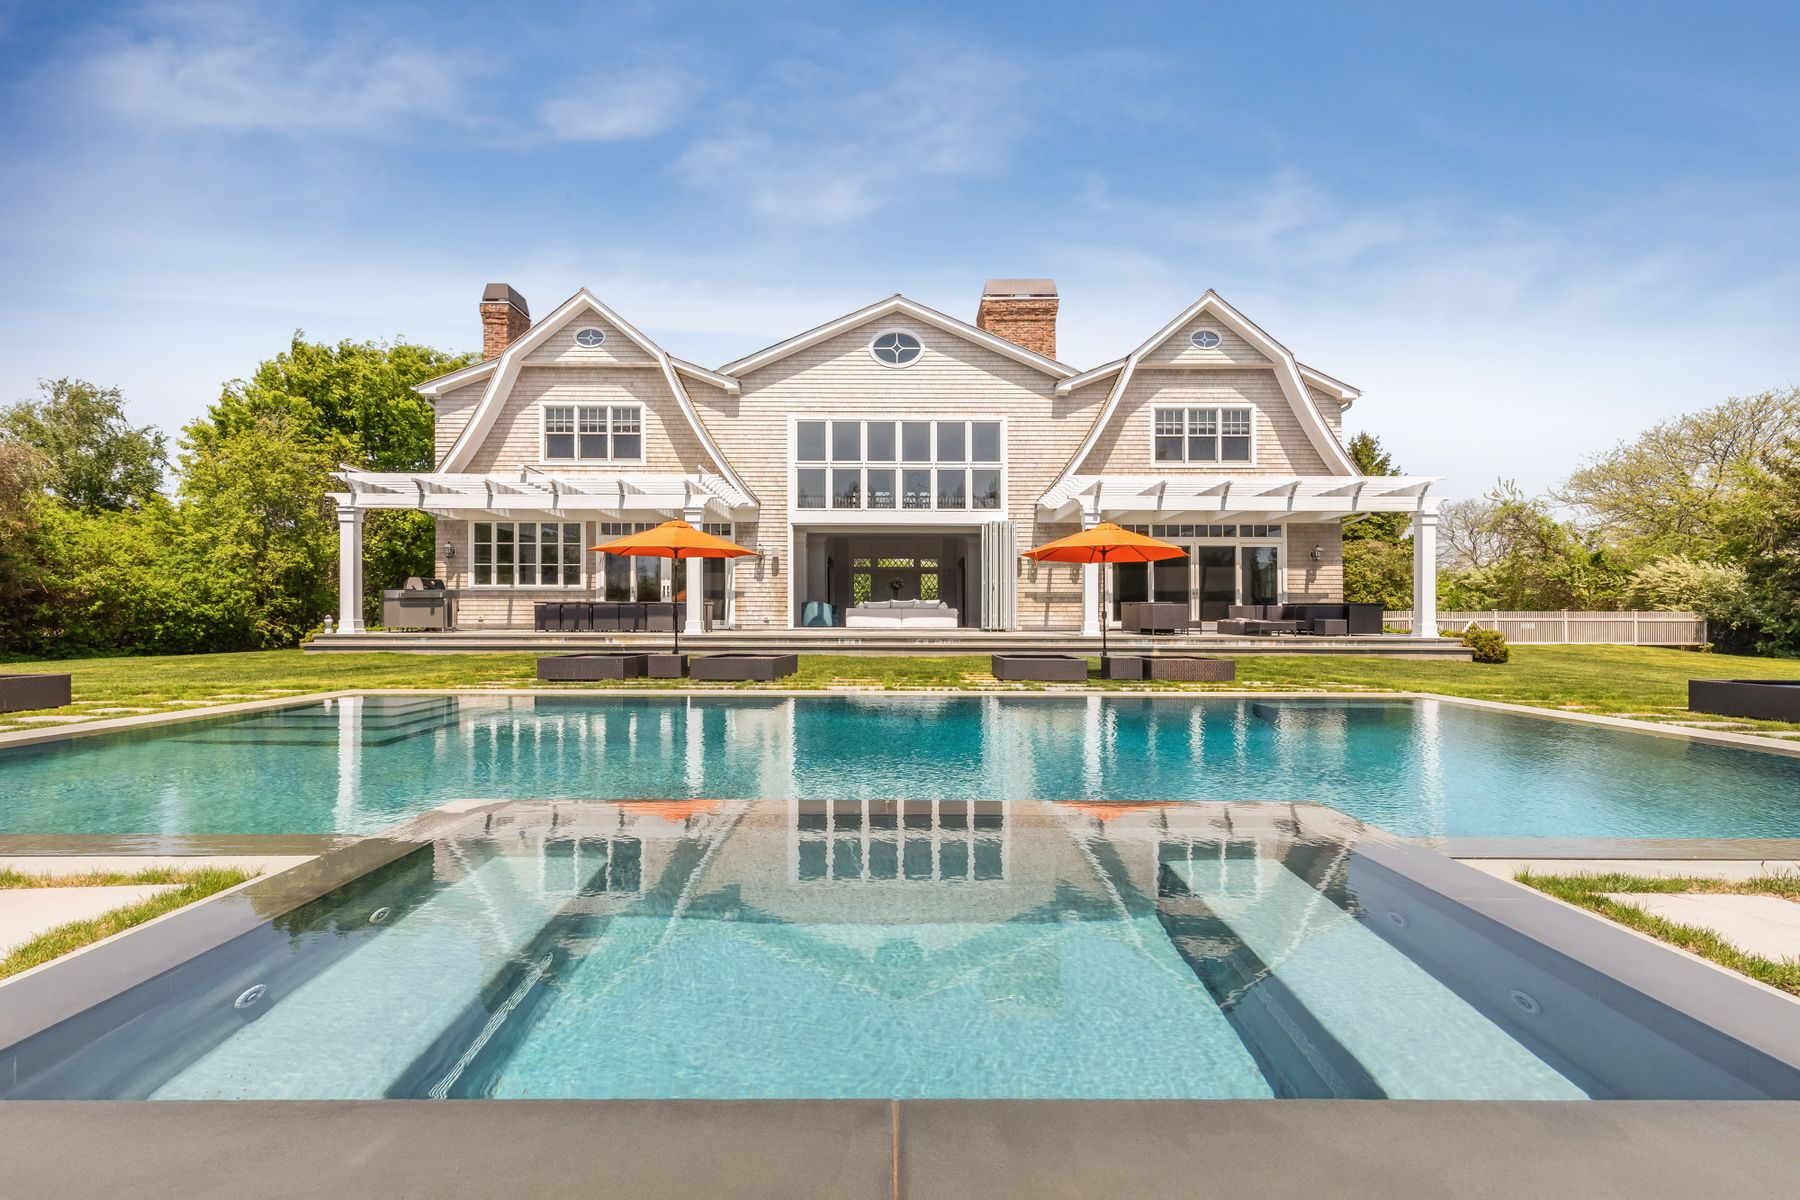 Single Family Home for Rent at PRIVATE SOUTHAMPTON VILLAGE ESTATE 82 Pheasant Close North Southampton, New York 11968 United States